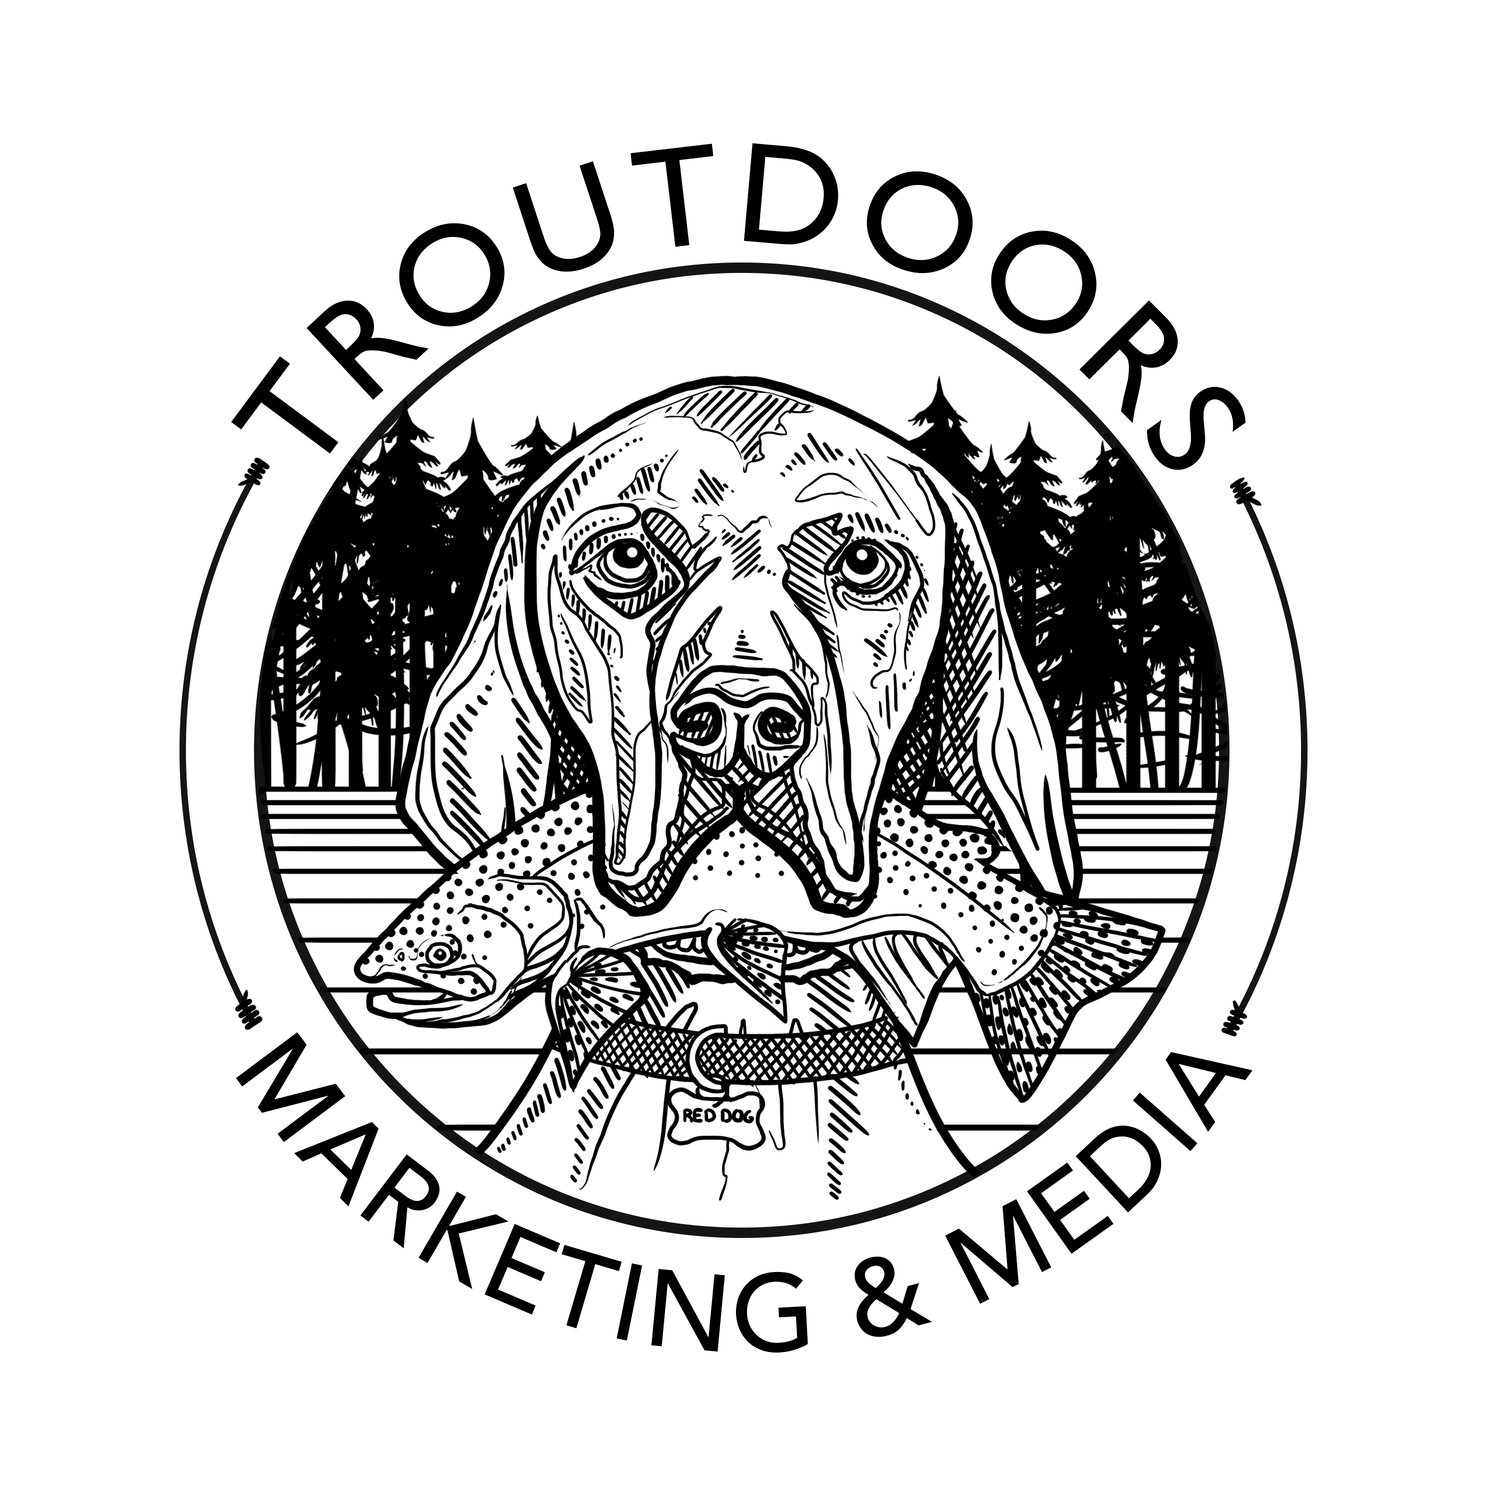 Troutdoors Marketing and Media